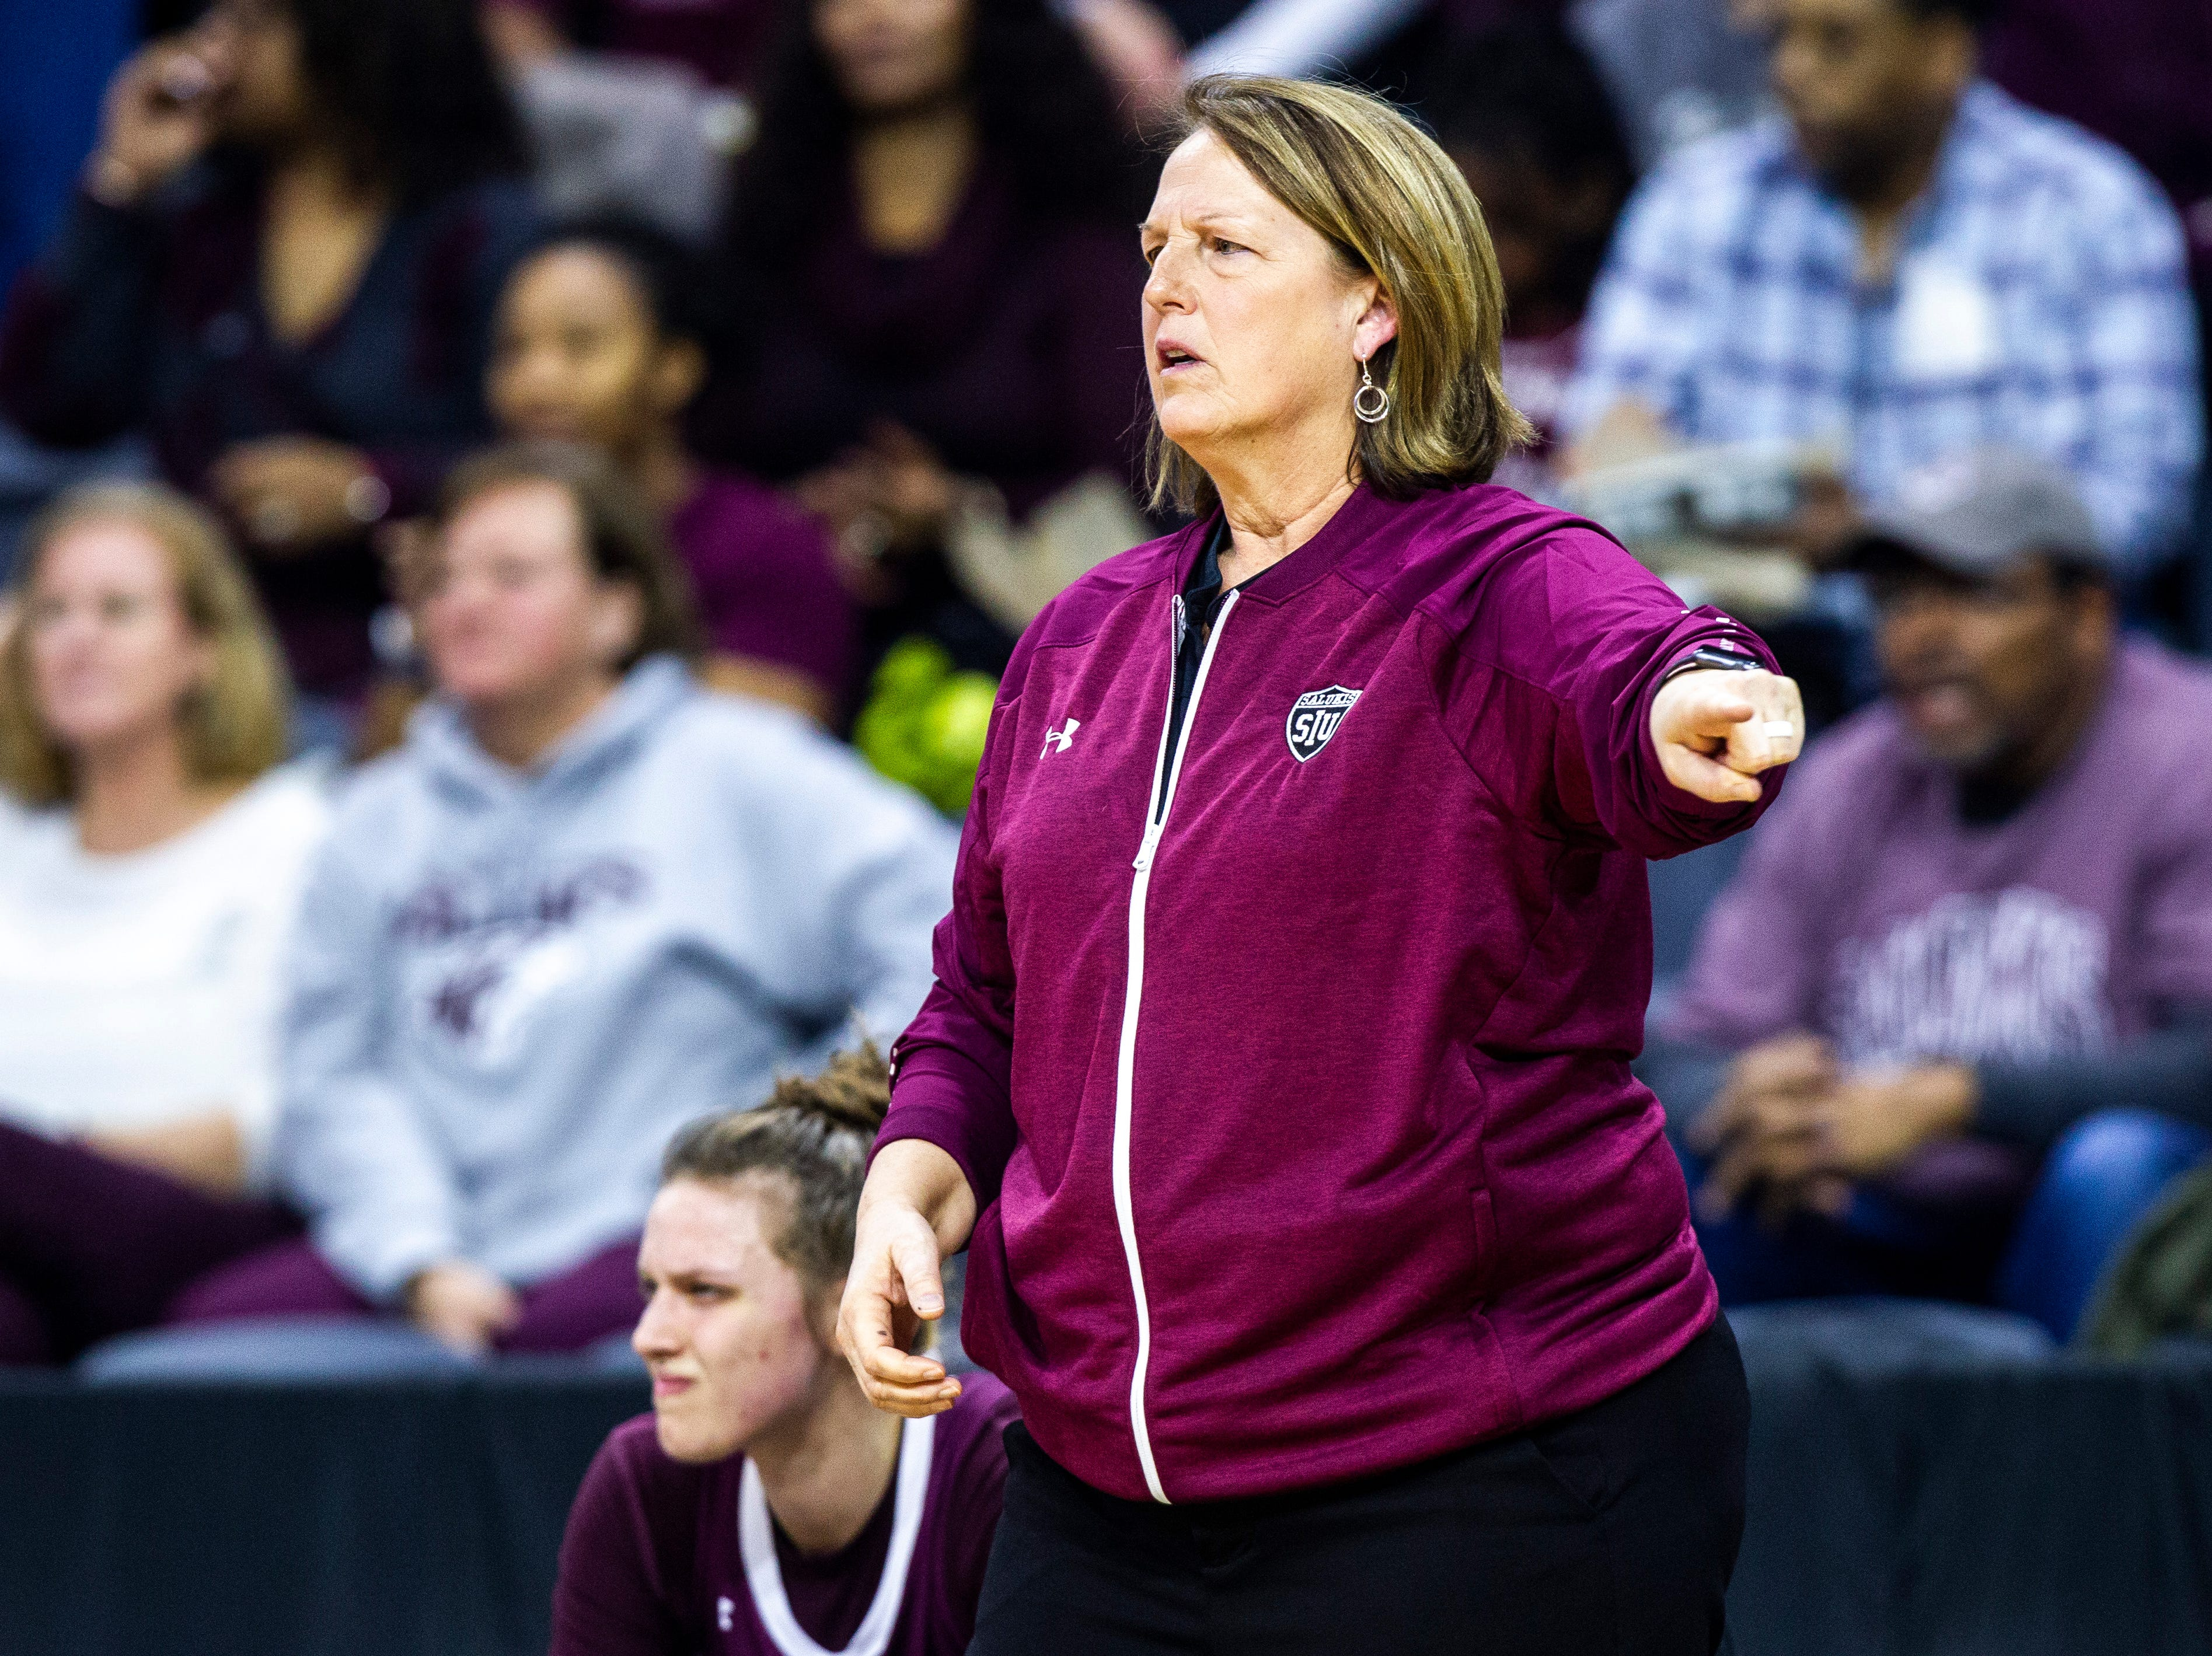 Southern Illinois head coach Cindy Stein calls out to players during a NCAA Missouri Valley Conference women's basketball quarterfinal tournament game, Friday, March 15, 2019, at the TaxSlayer Center in Moline, Illinois.